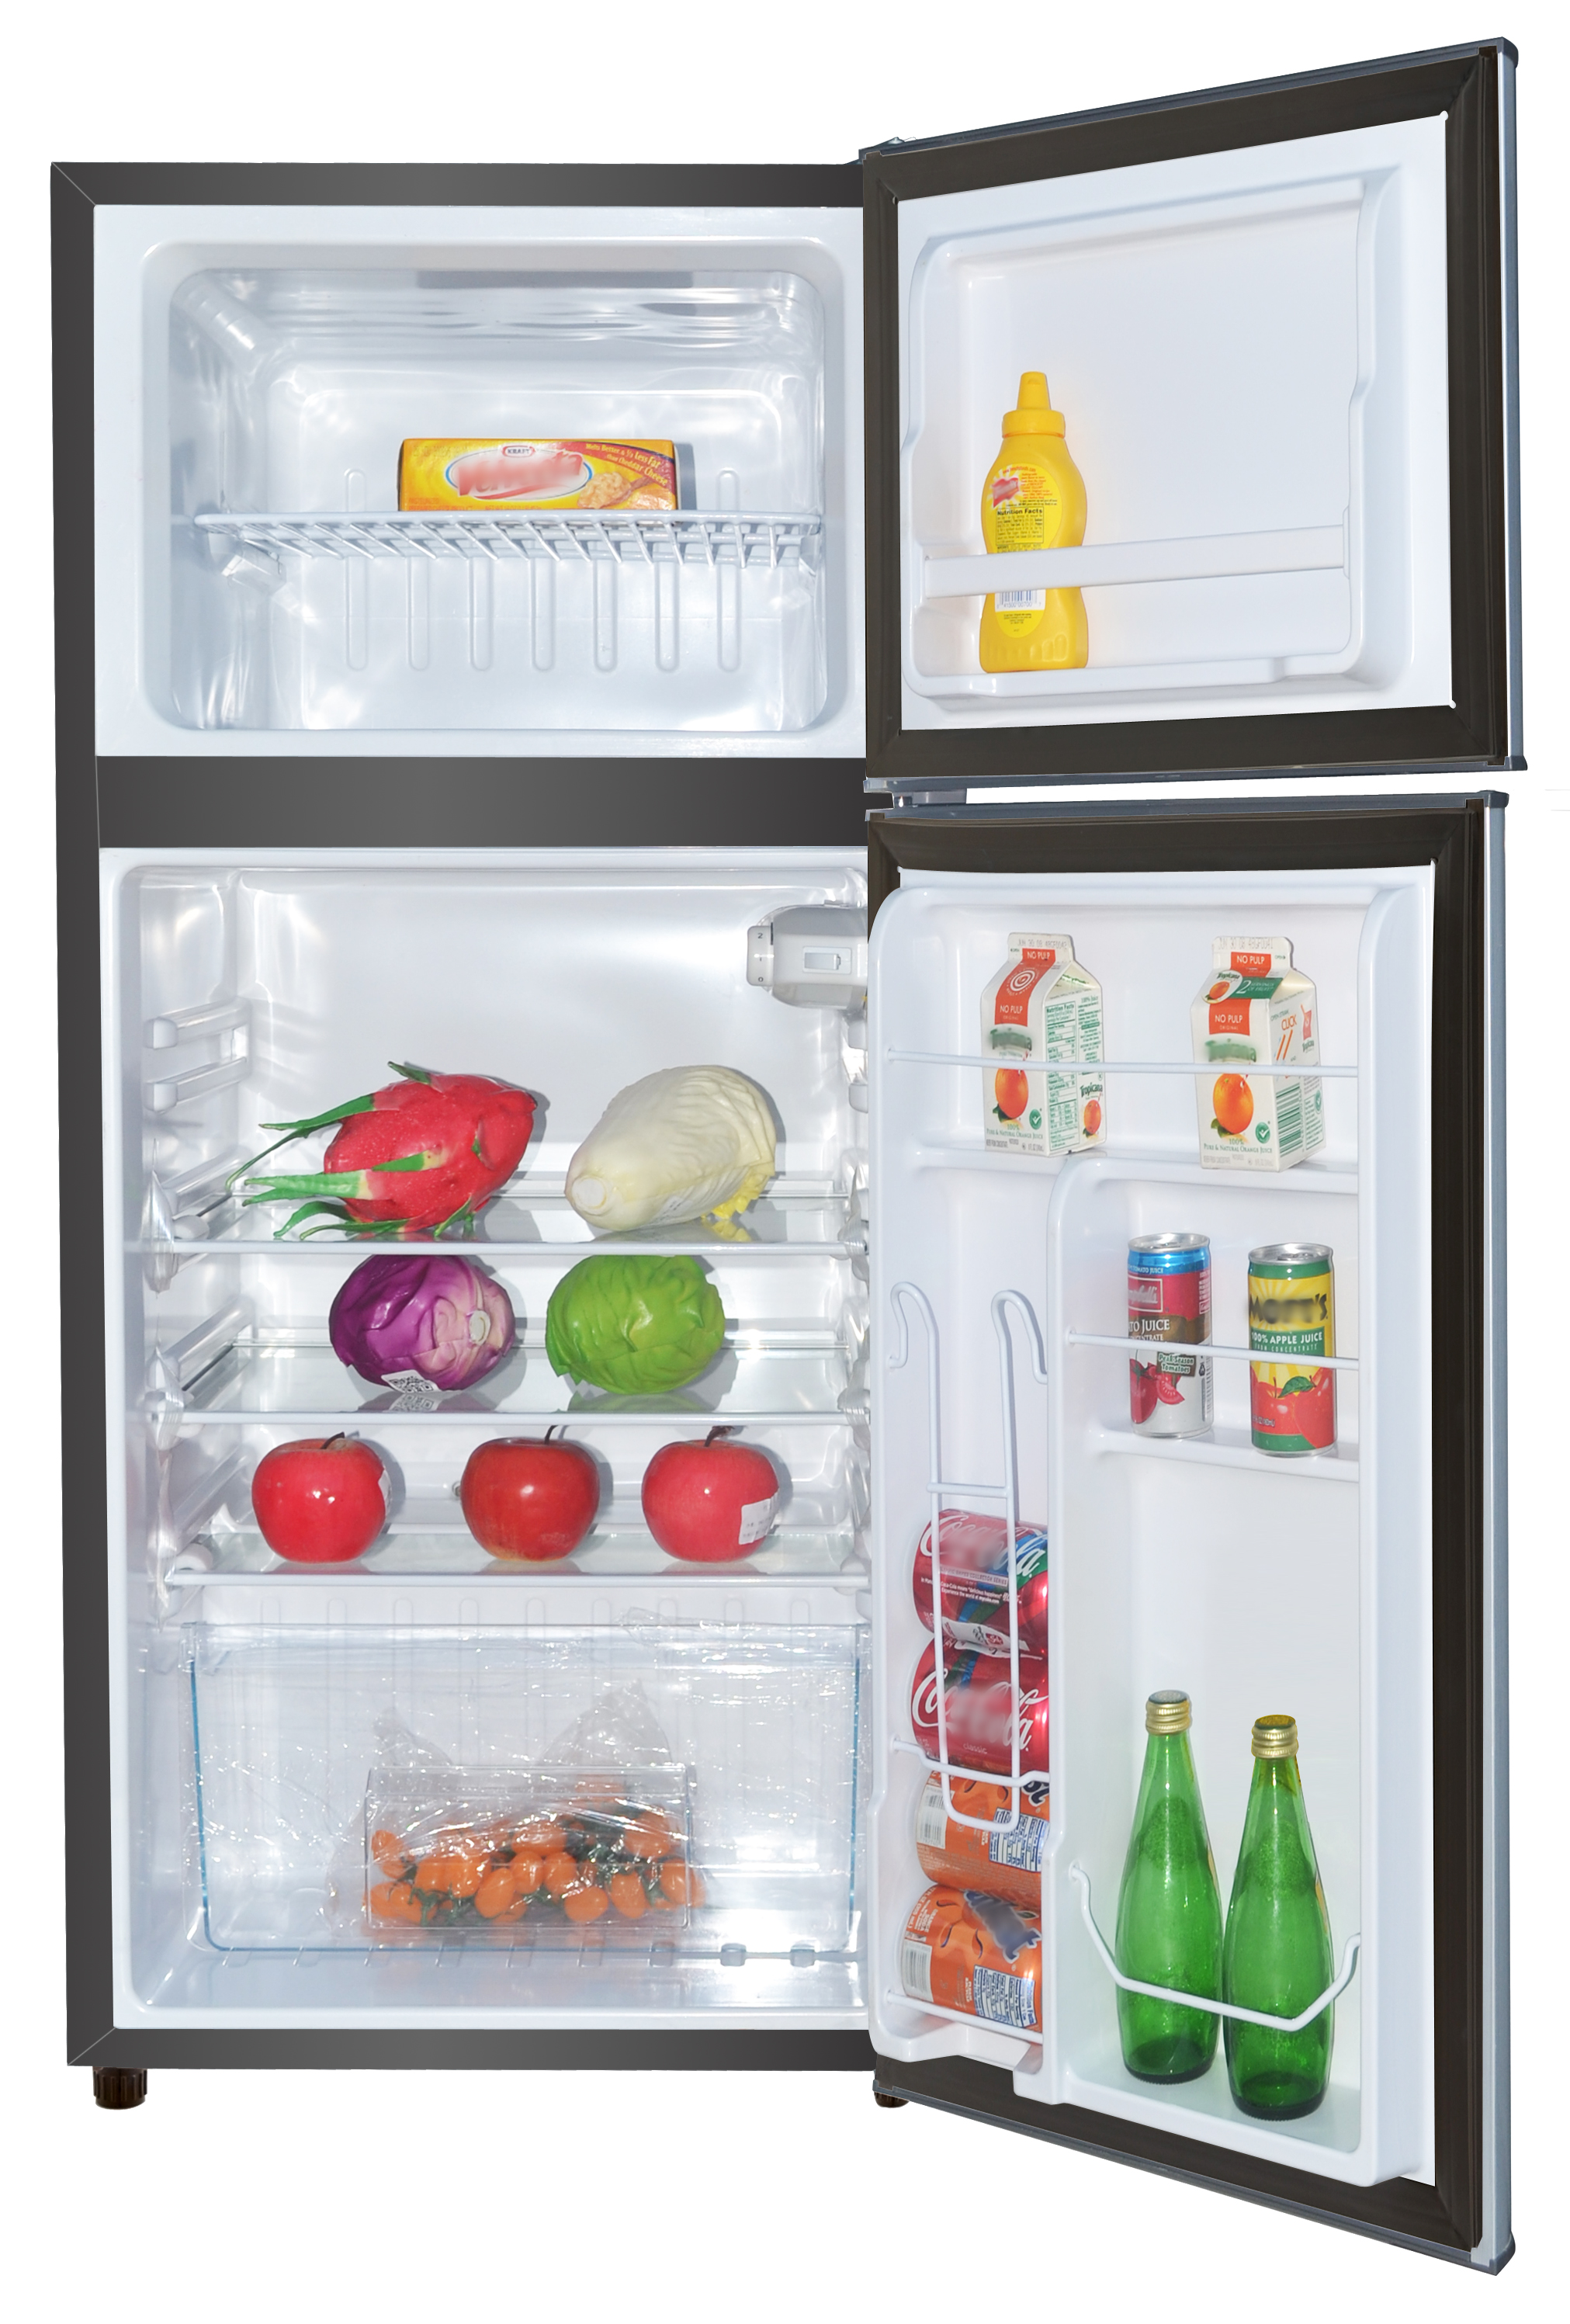 RCA 4 5 Cu Ft Two Door Mini Fridge with Freezer RFR459